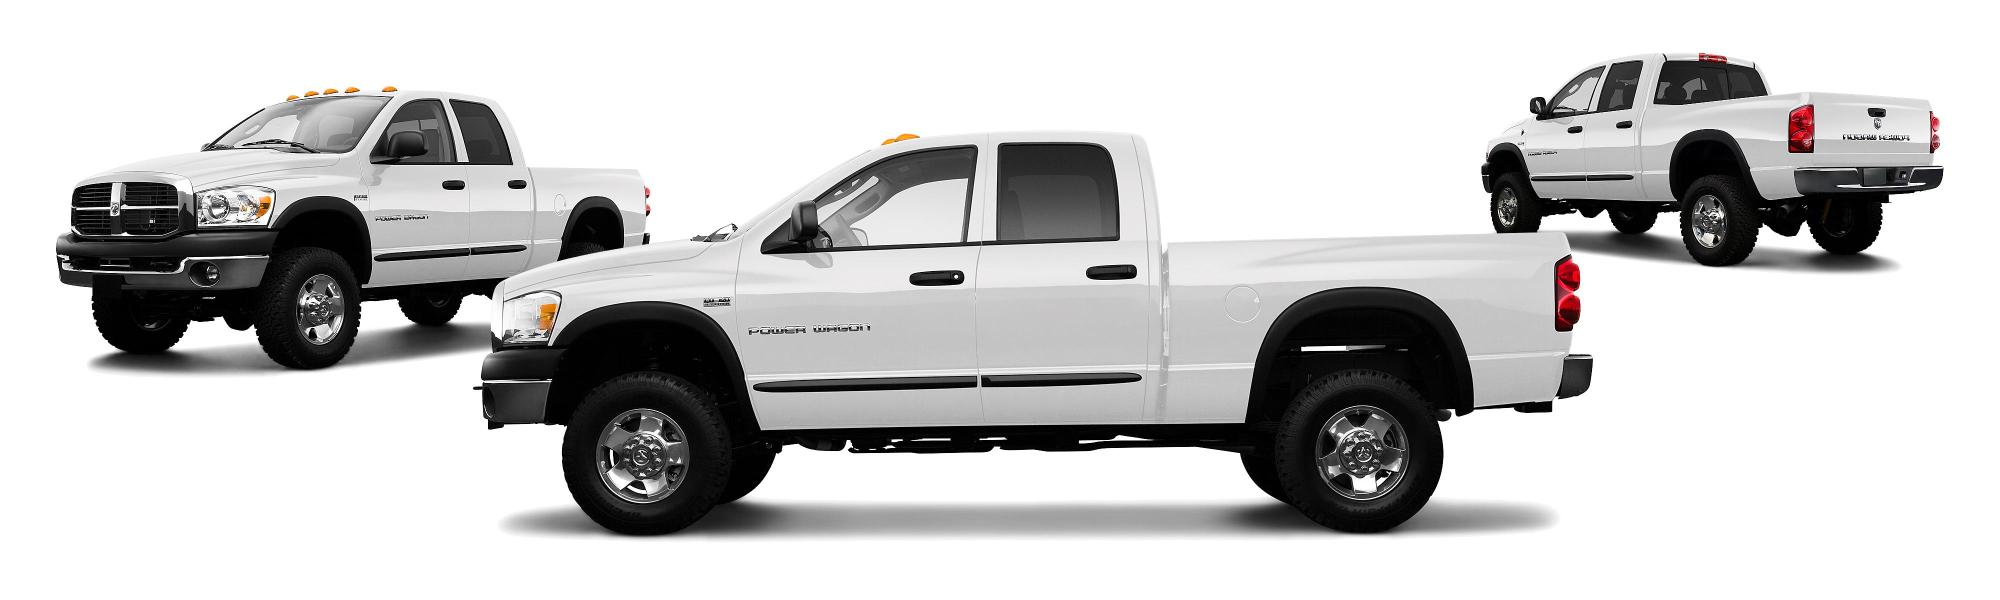 hight resolution of 2009 dodge ram pickup 2500 4x4 slt 4dr quad cab 8 ft lb pickup research groovecar